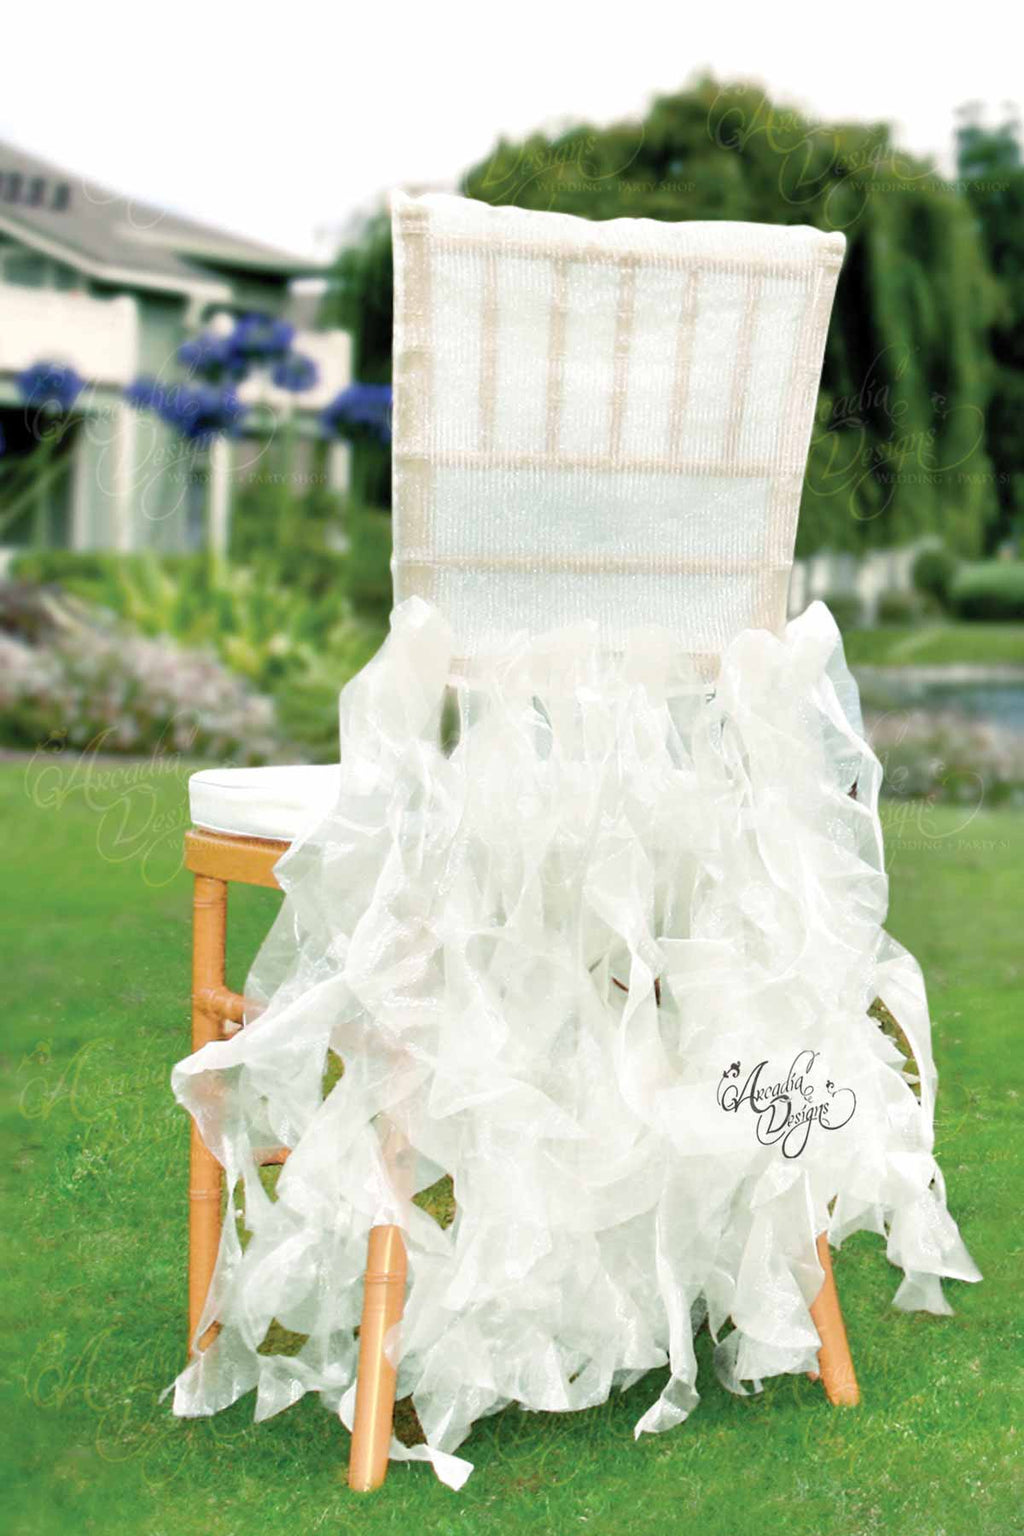 Arcadia Designs Sheer White Ruffled Bridal Chair Cover White